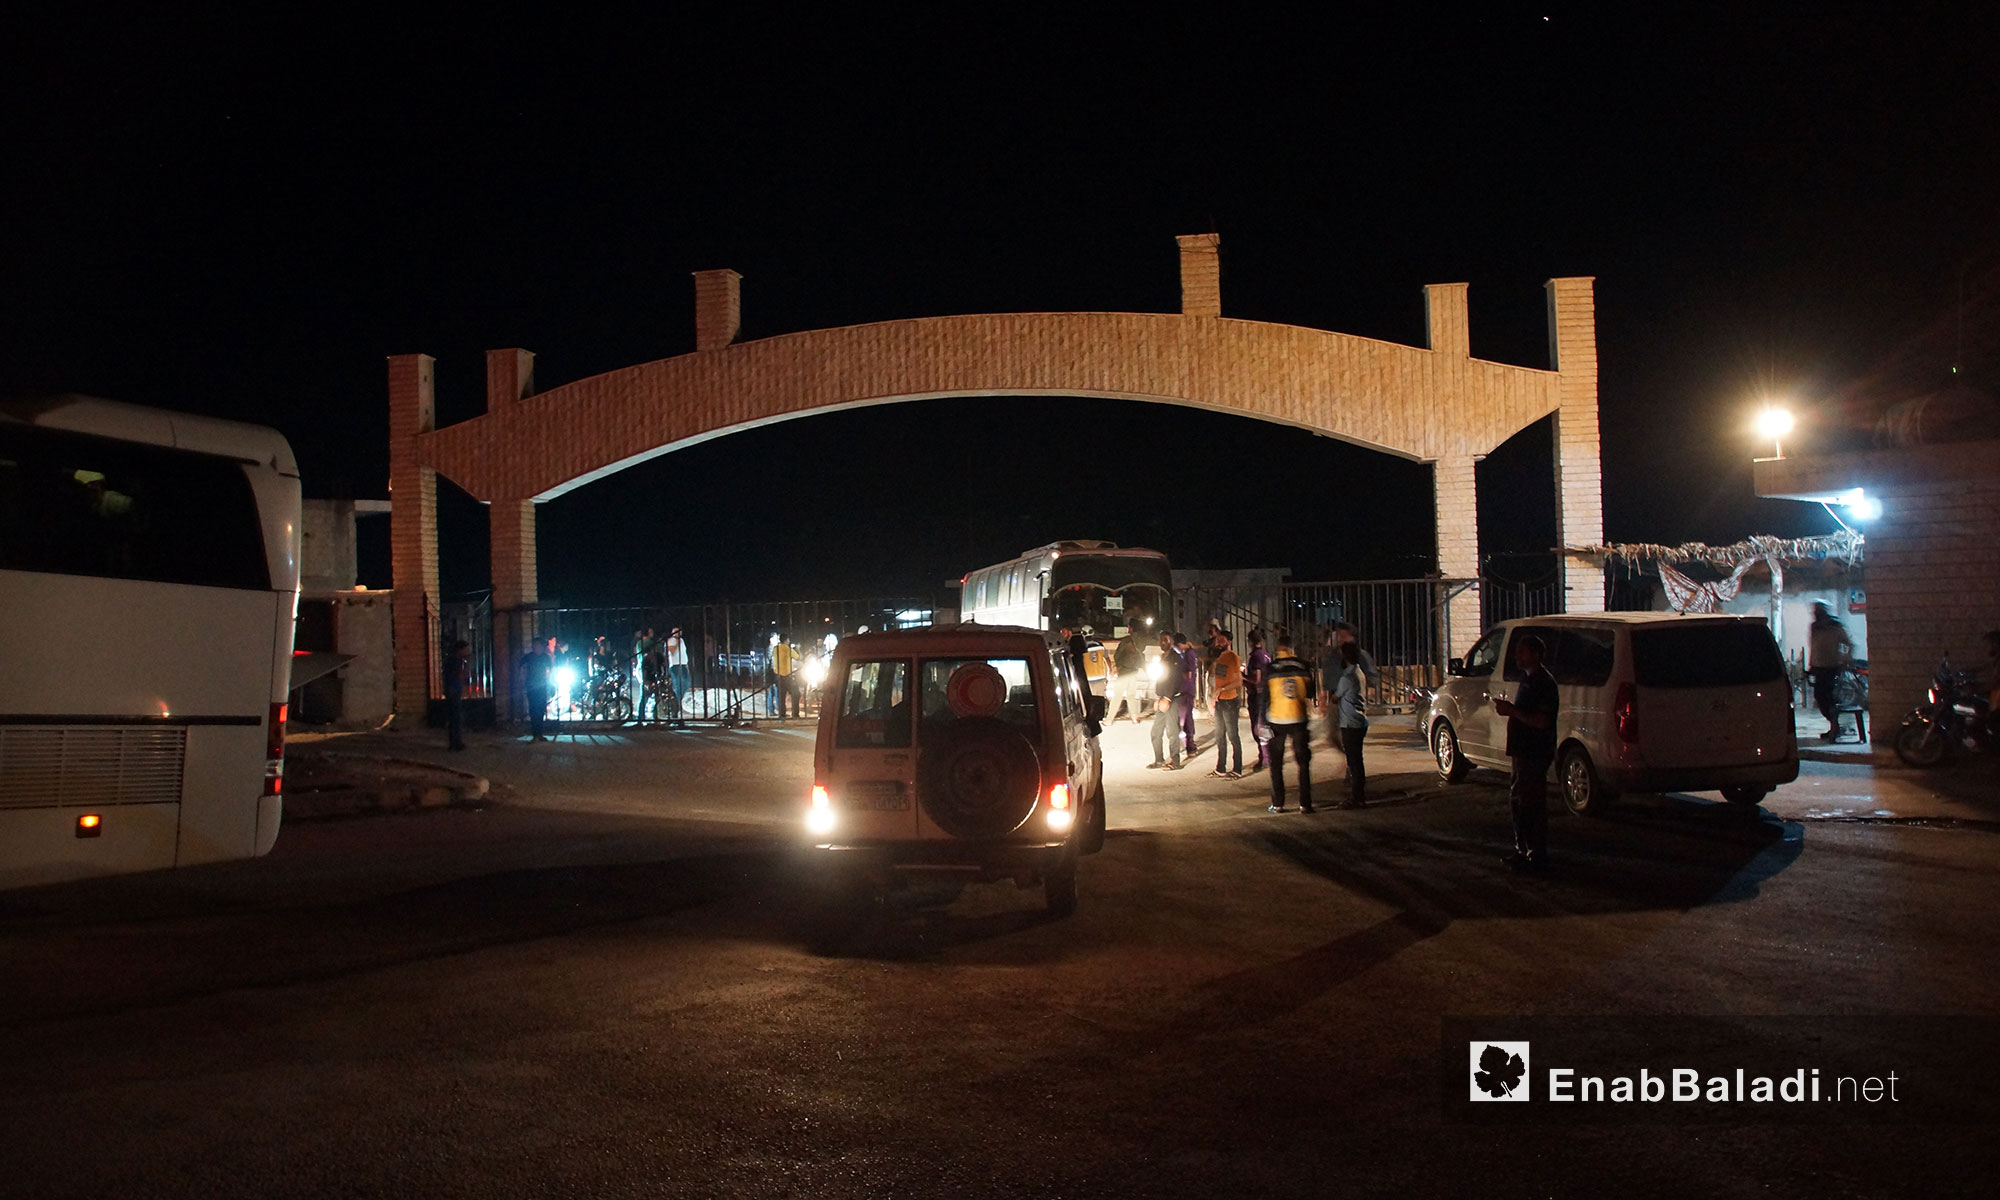 The arrival of the first batch of Daraa IDPs in the city of Qalaat al-Madiq, rural Hama – July 16, 2018 (Enab Baladi)